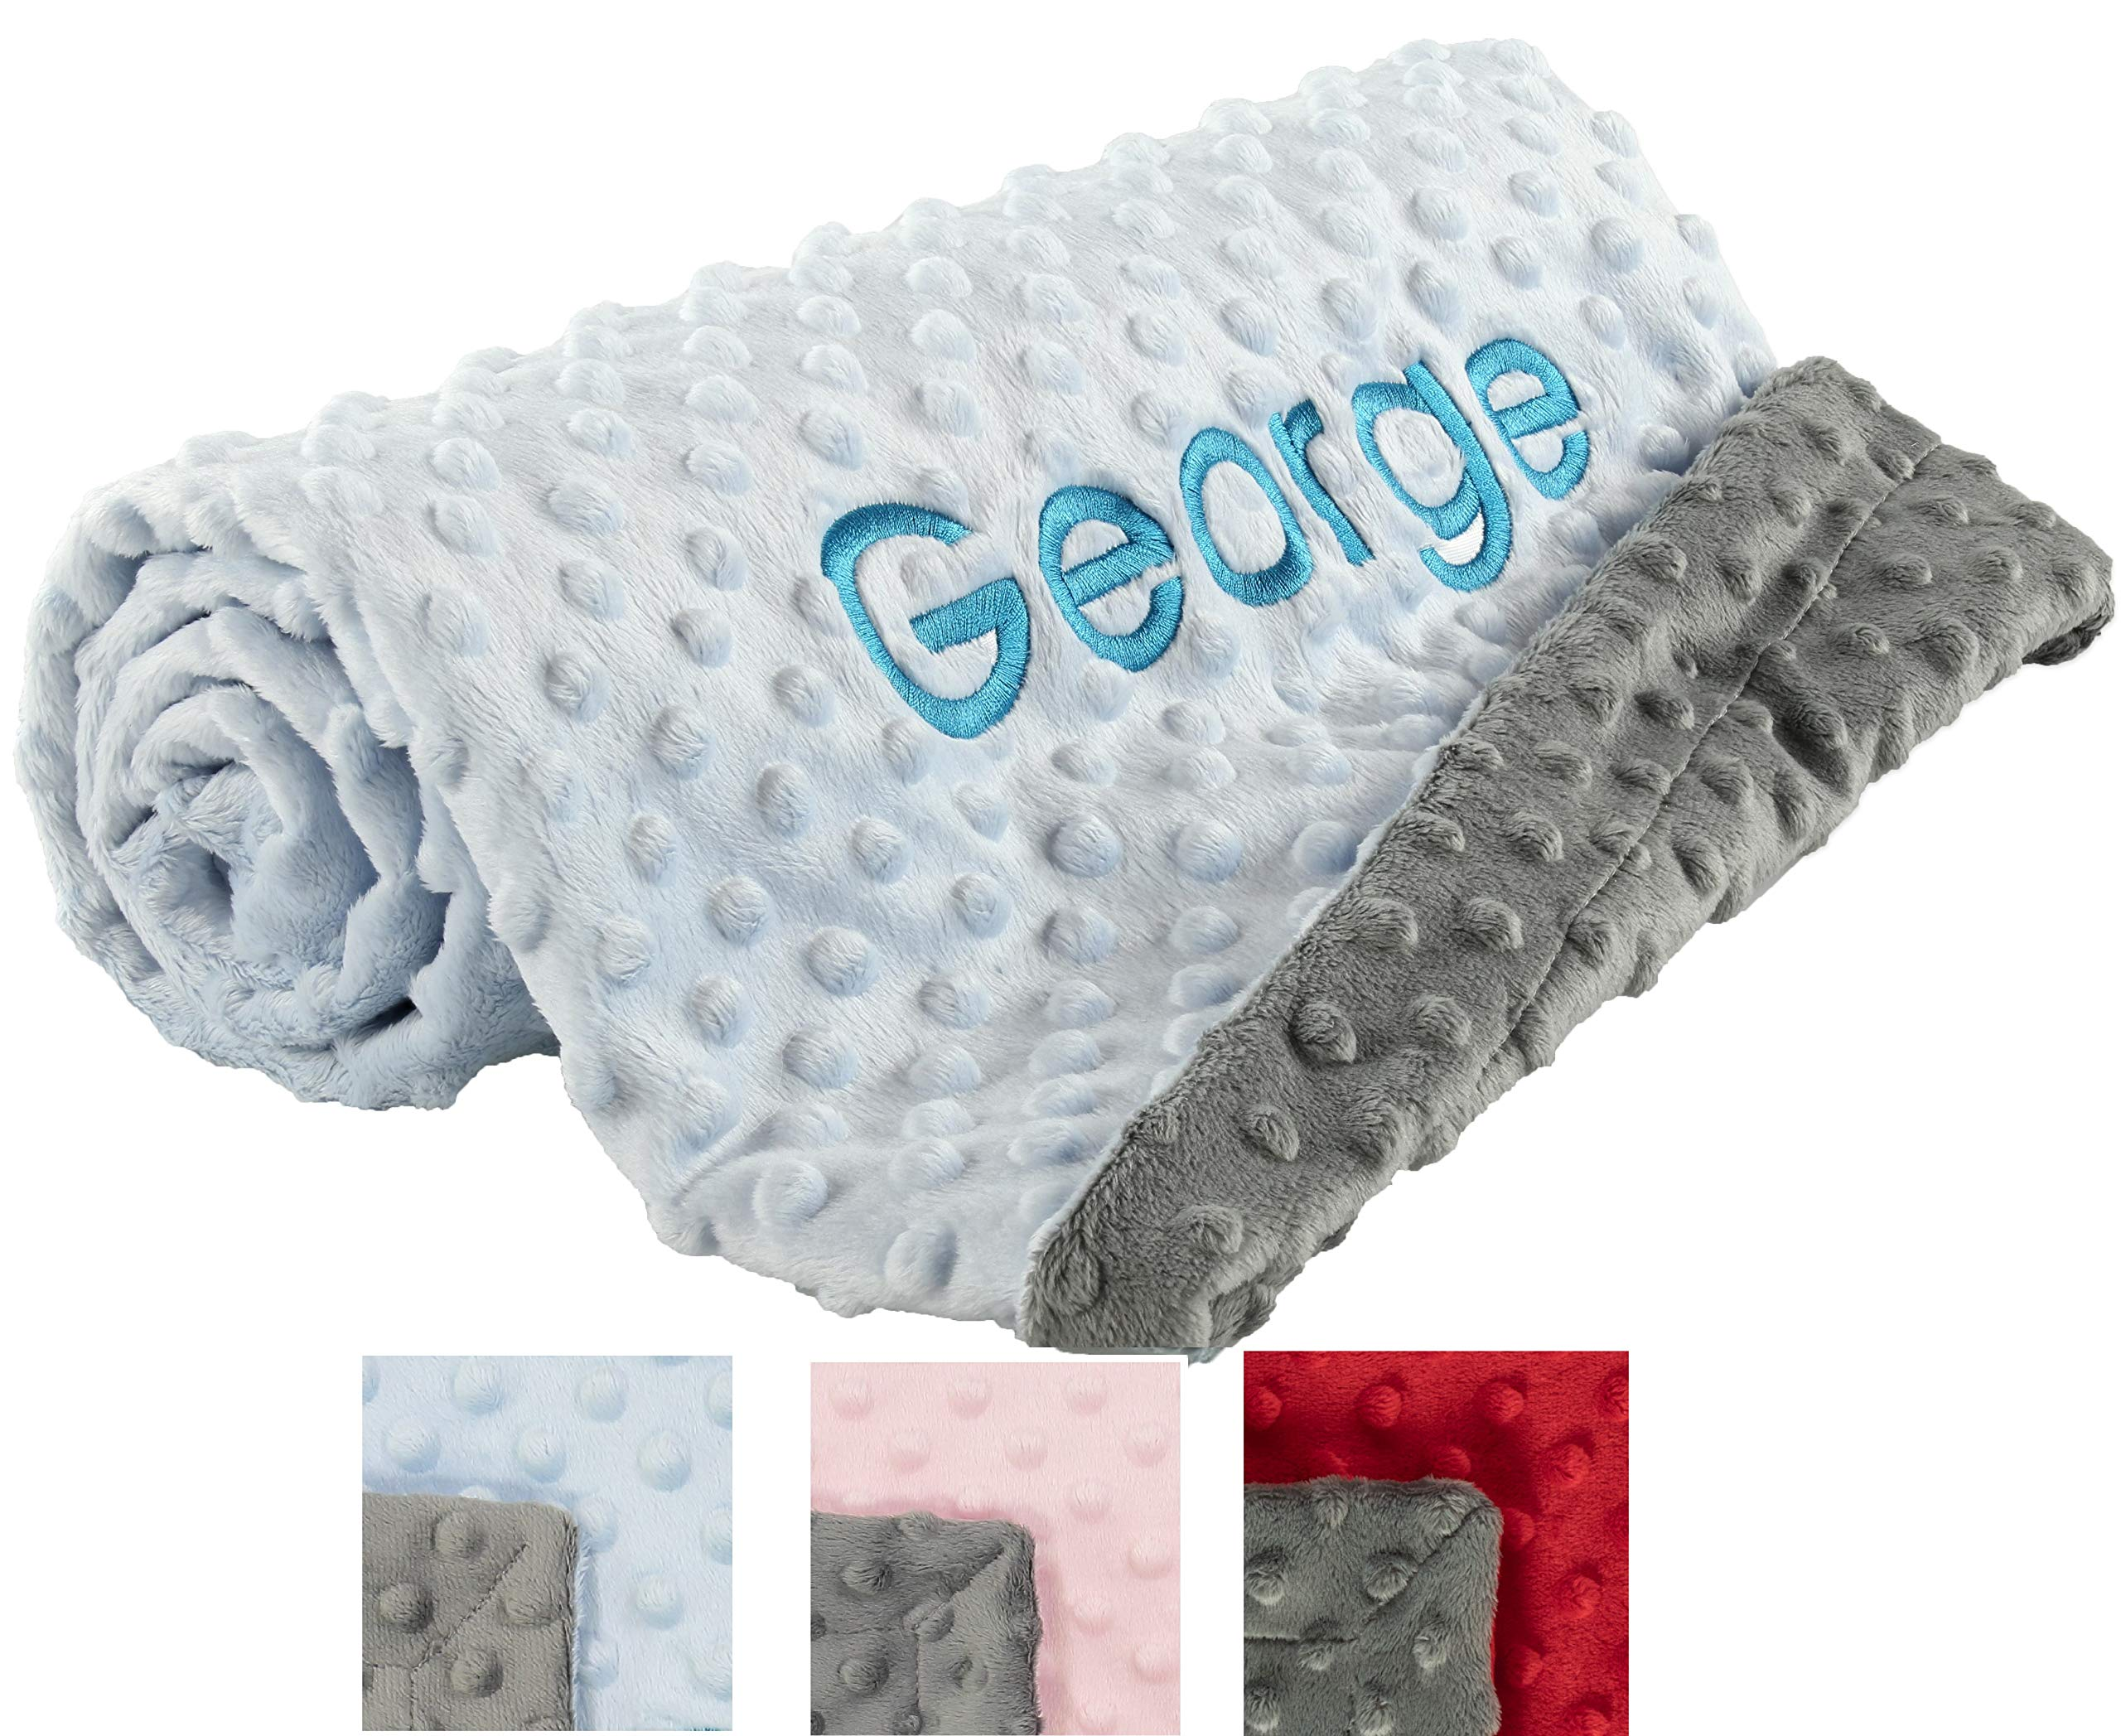 berry bebe Personalized Baby Blanket, Cozy Plush Blankets for Newborn, Blue and Gray for Boys